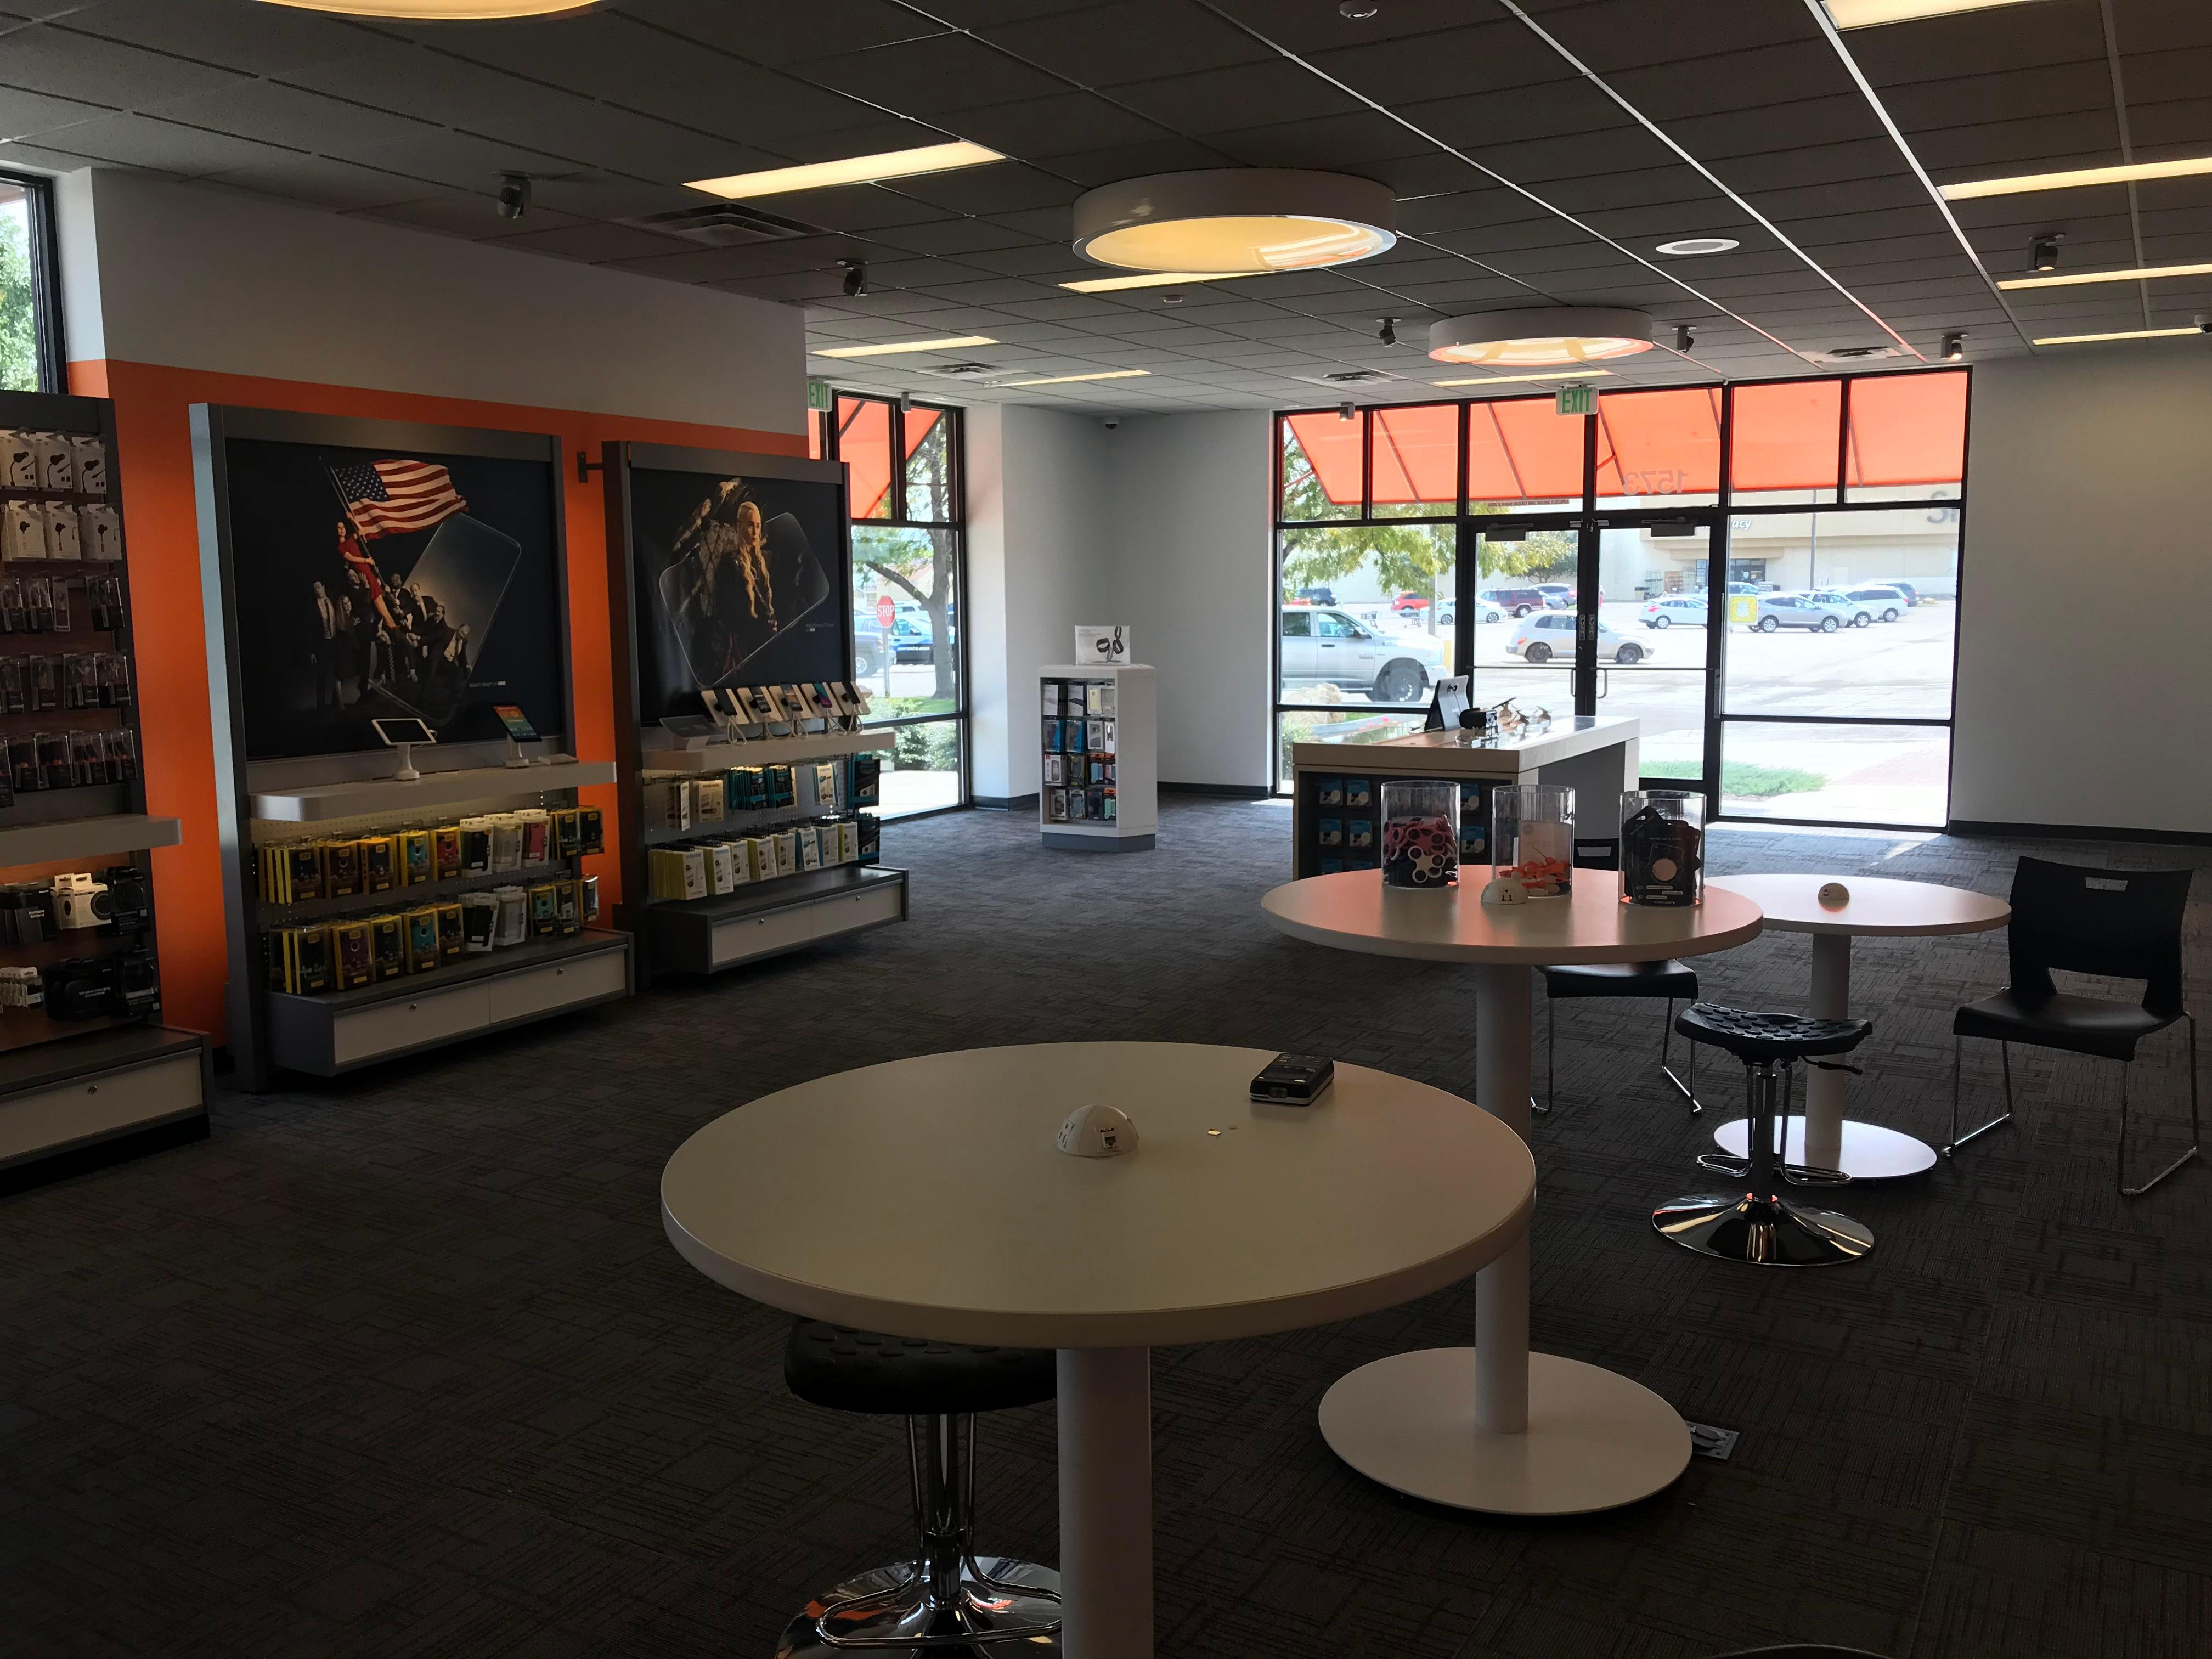 AT&T Store image 5